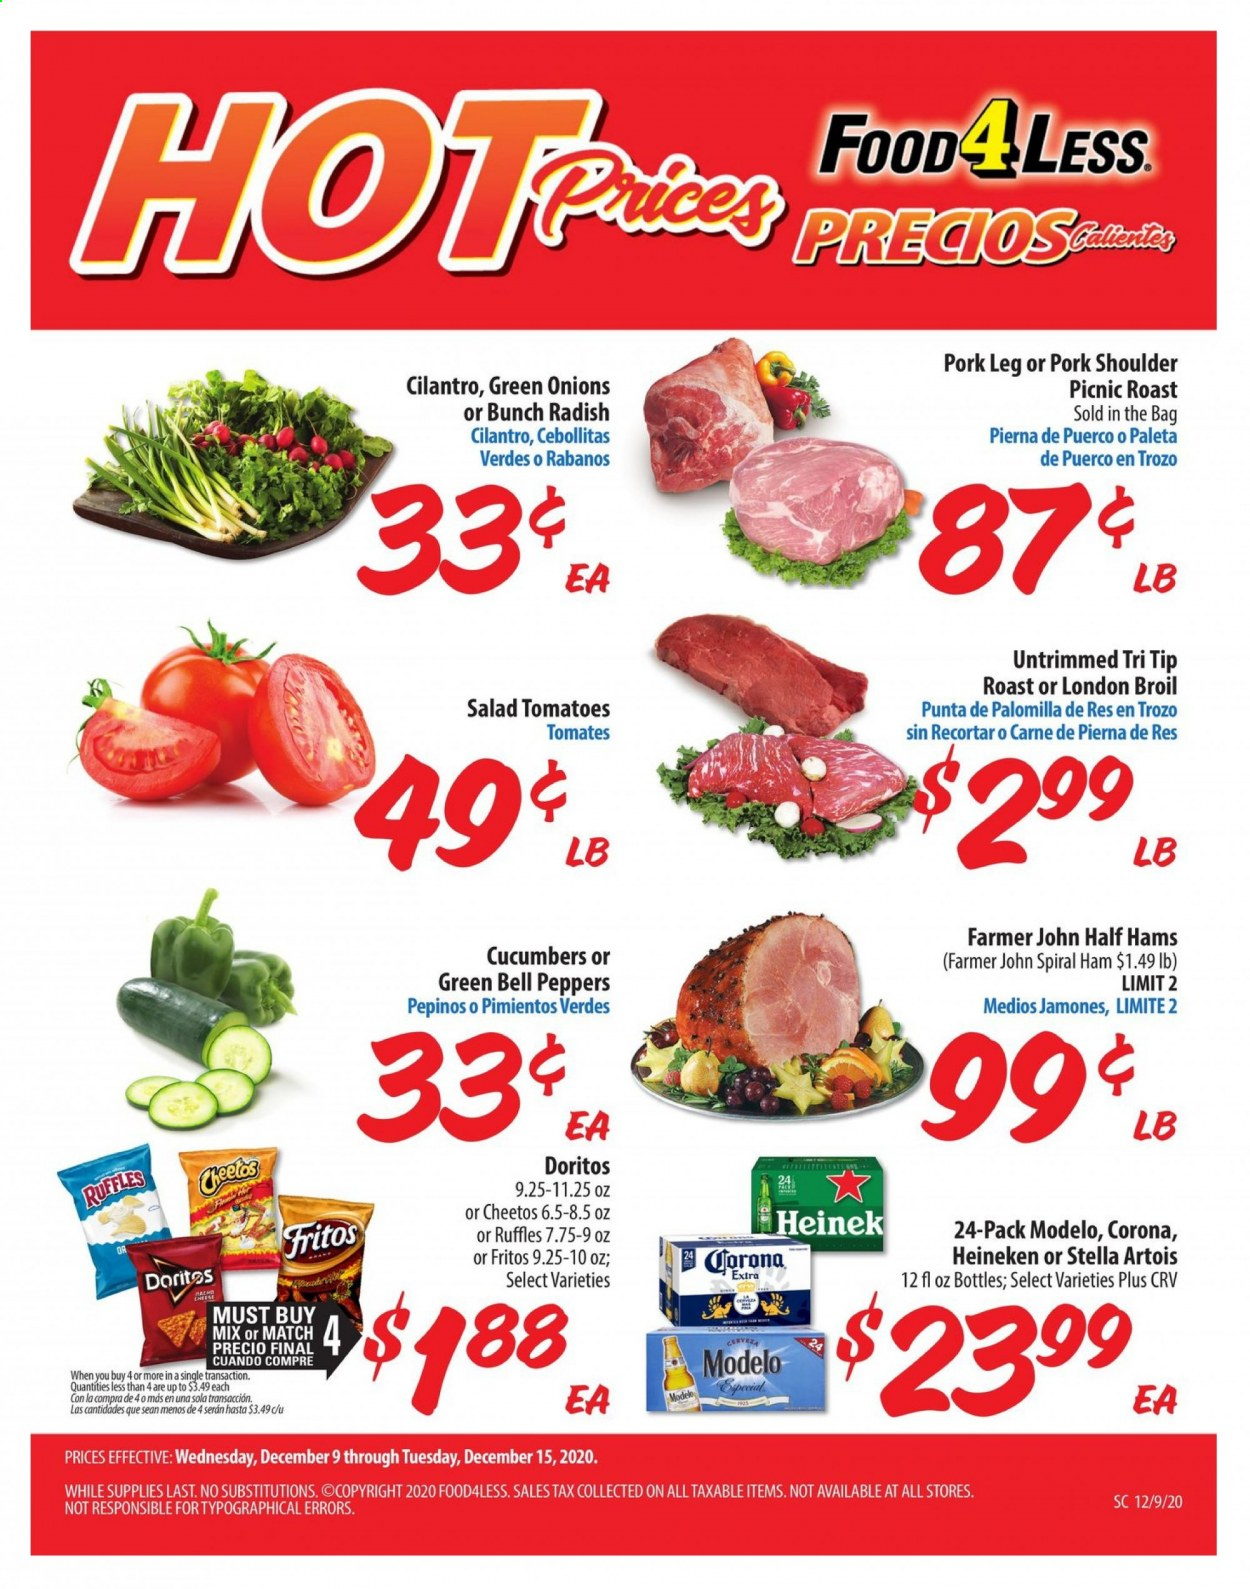 Food 4 Less Flyer - 12.09.2020 - 12.15.2020 - Sales products - bag, bell peppers, Cerveza, cilantro, cucumbers, Doritos, Fritos, Stella Artois, tomatoes, ham, pork meat, pork shoulder, cheetos, onion, cheese, salad, spiral ham, corona, heineken, peppers. Page 1.